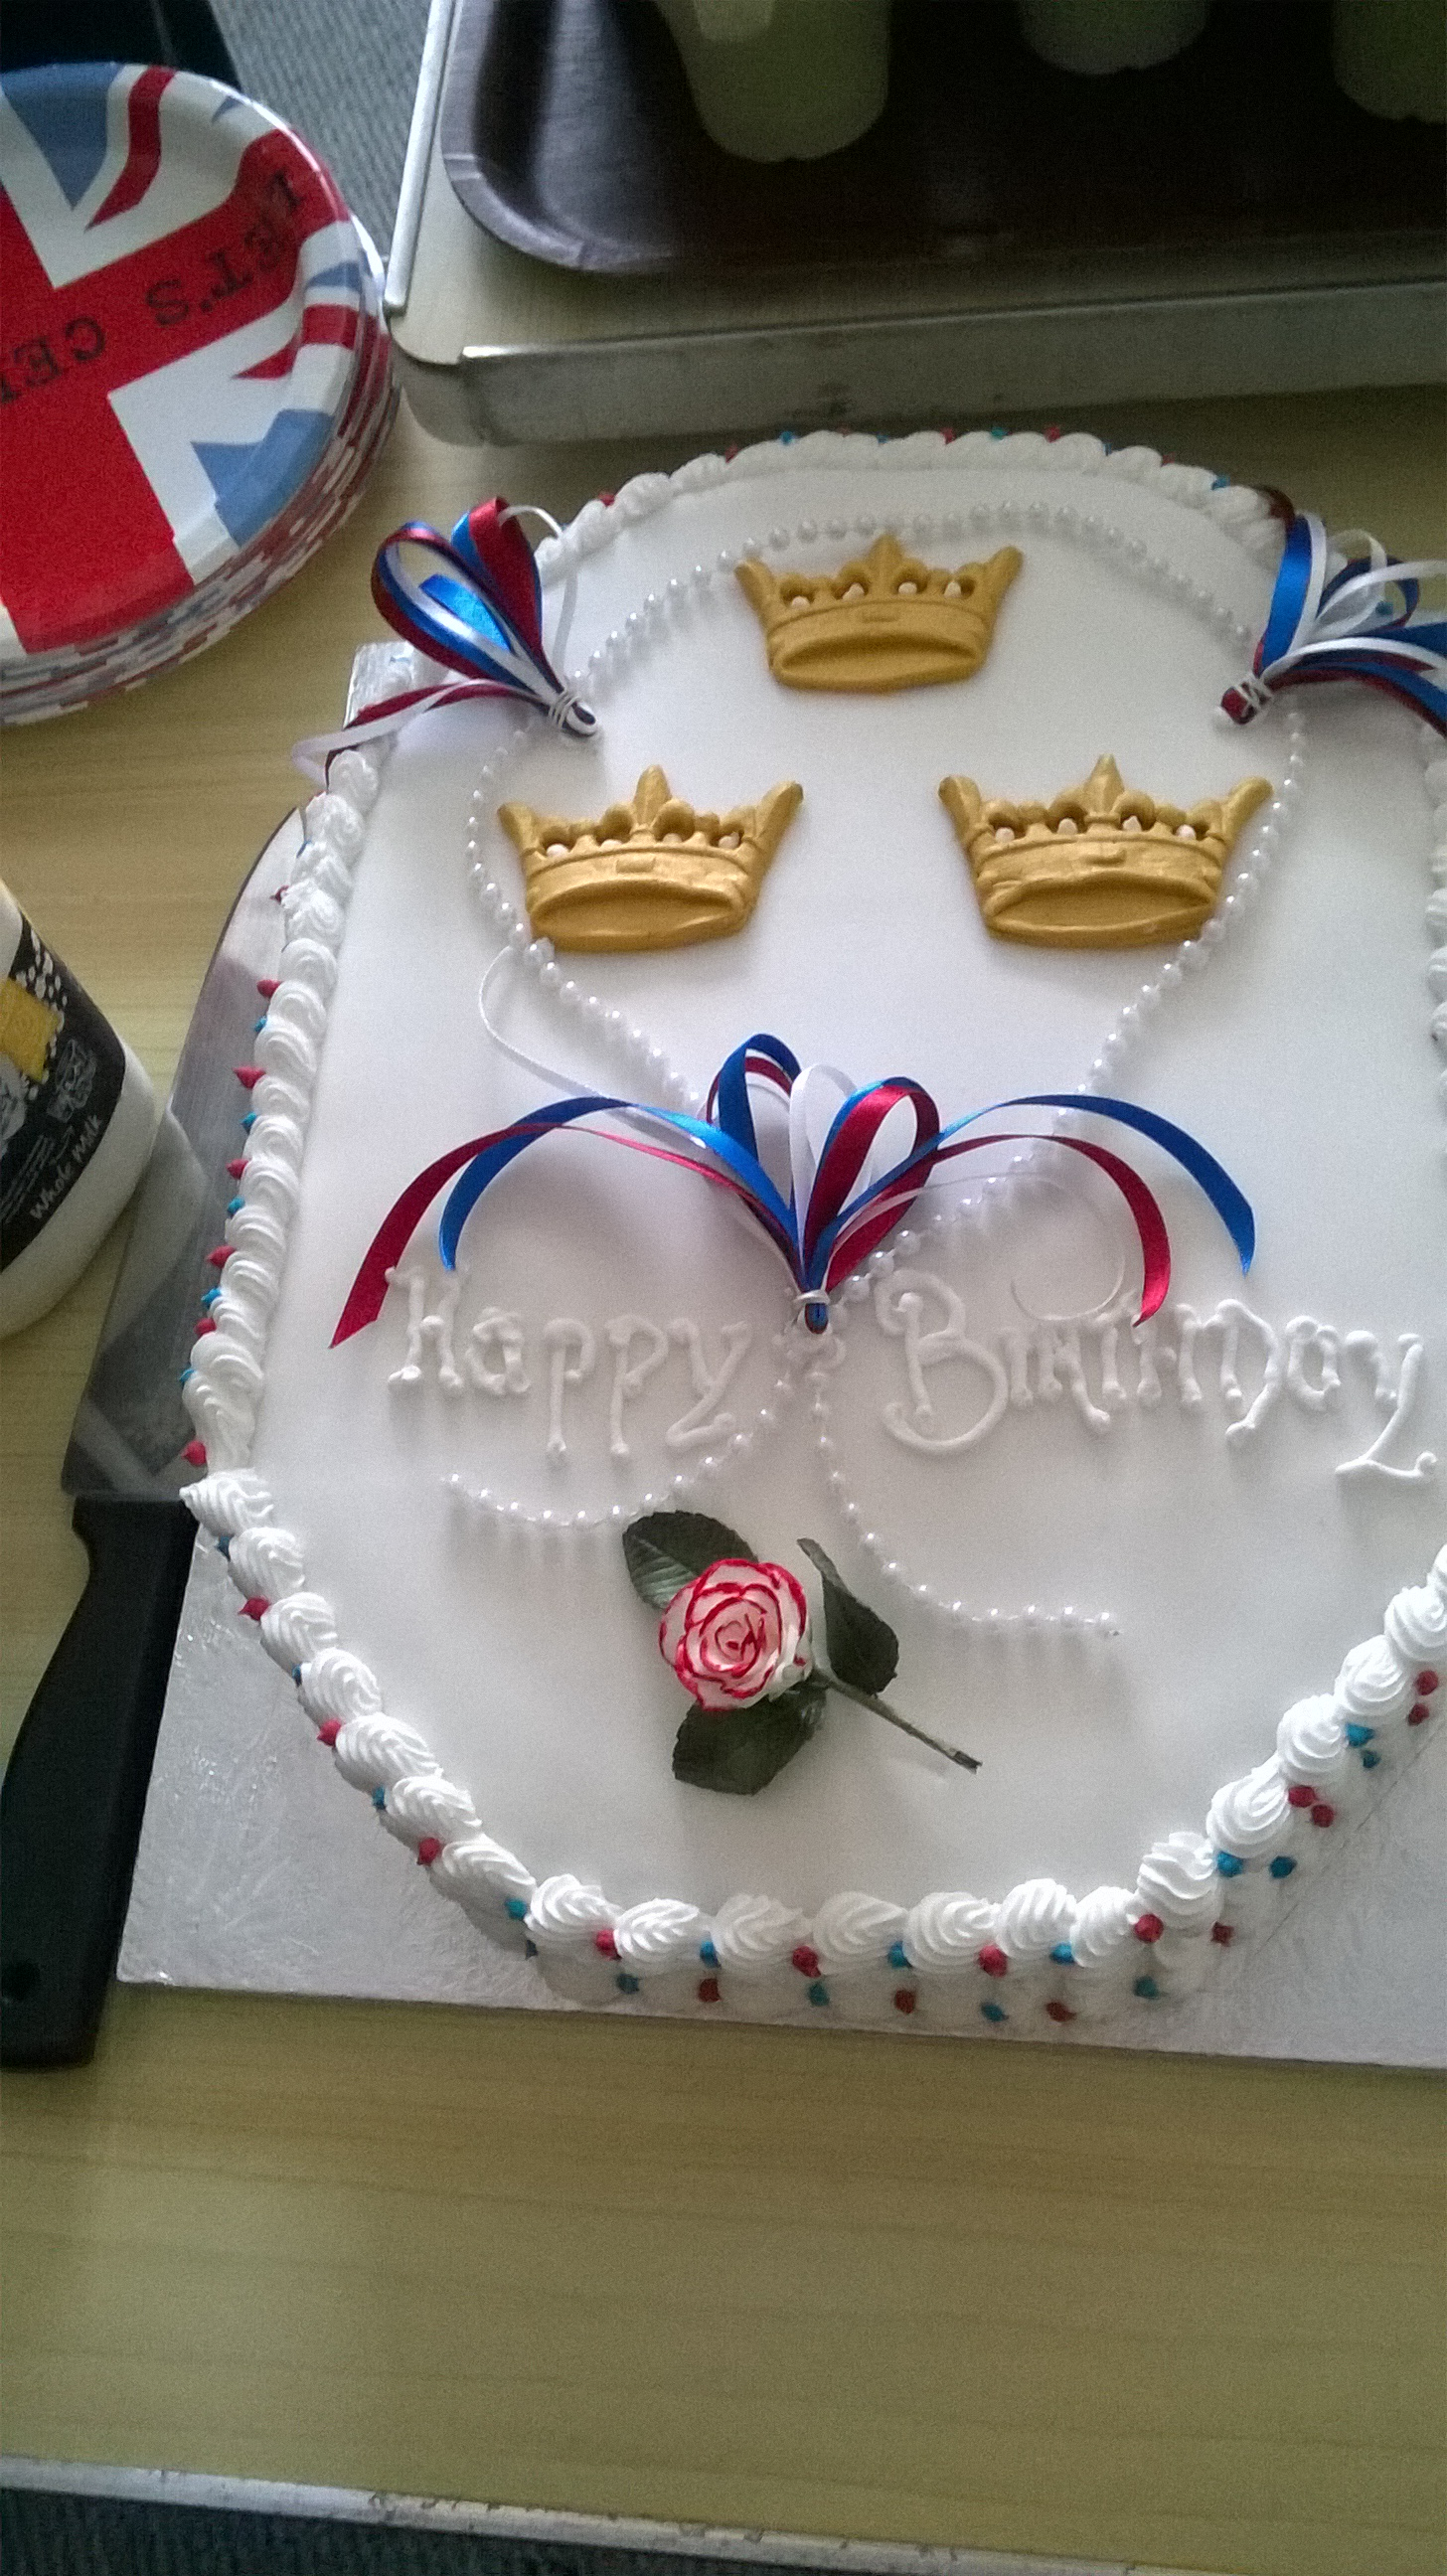 Birthday cake fit for a Queen!